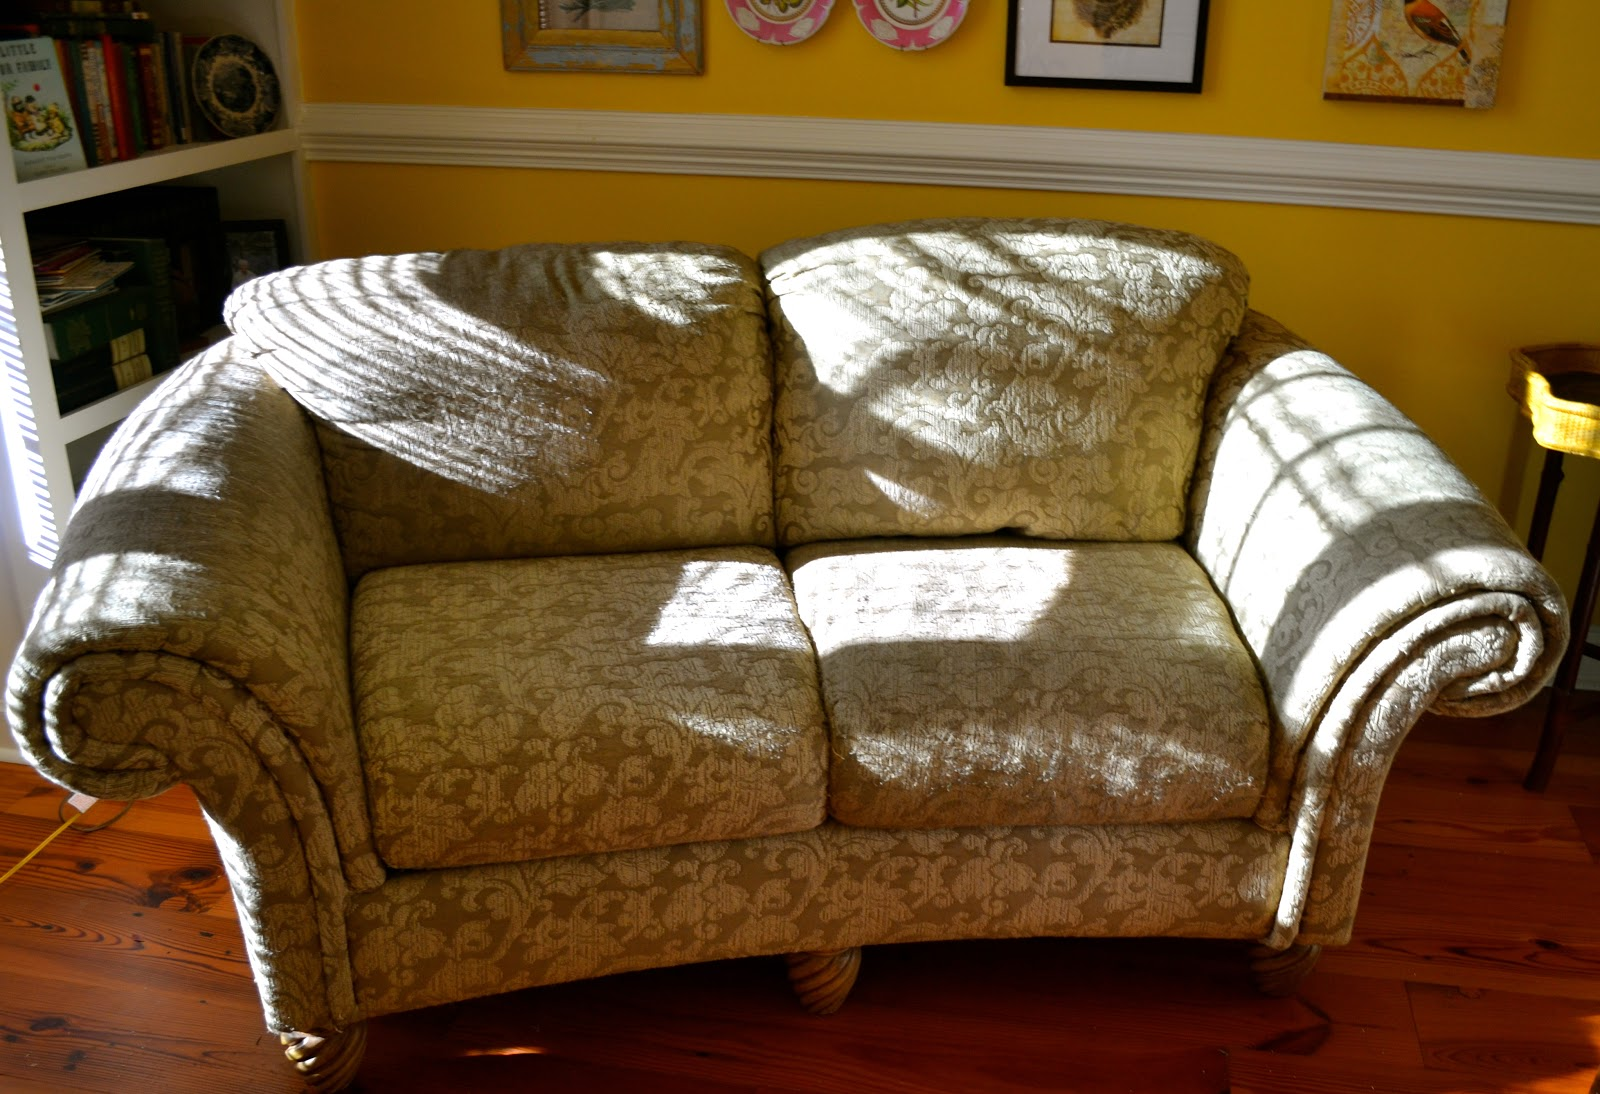 Diy Chair Slipcover No Sew Walmart Baby High Chairs Sale Sewing Sofa Slipcovers Easy Couch Reupholster